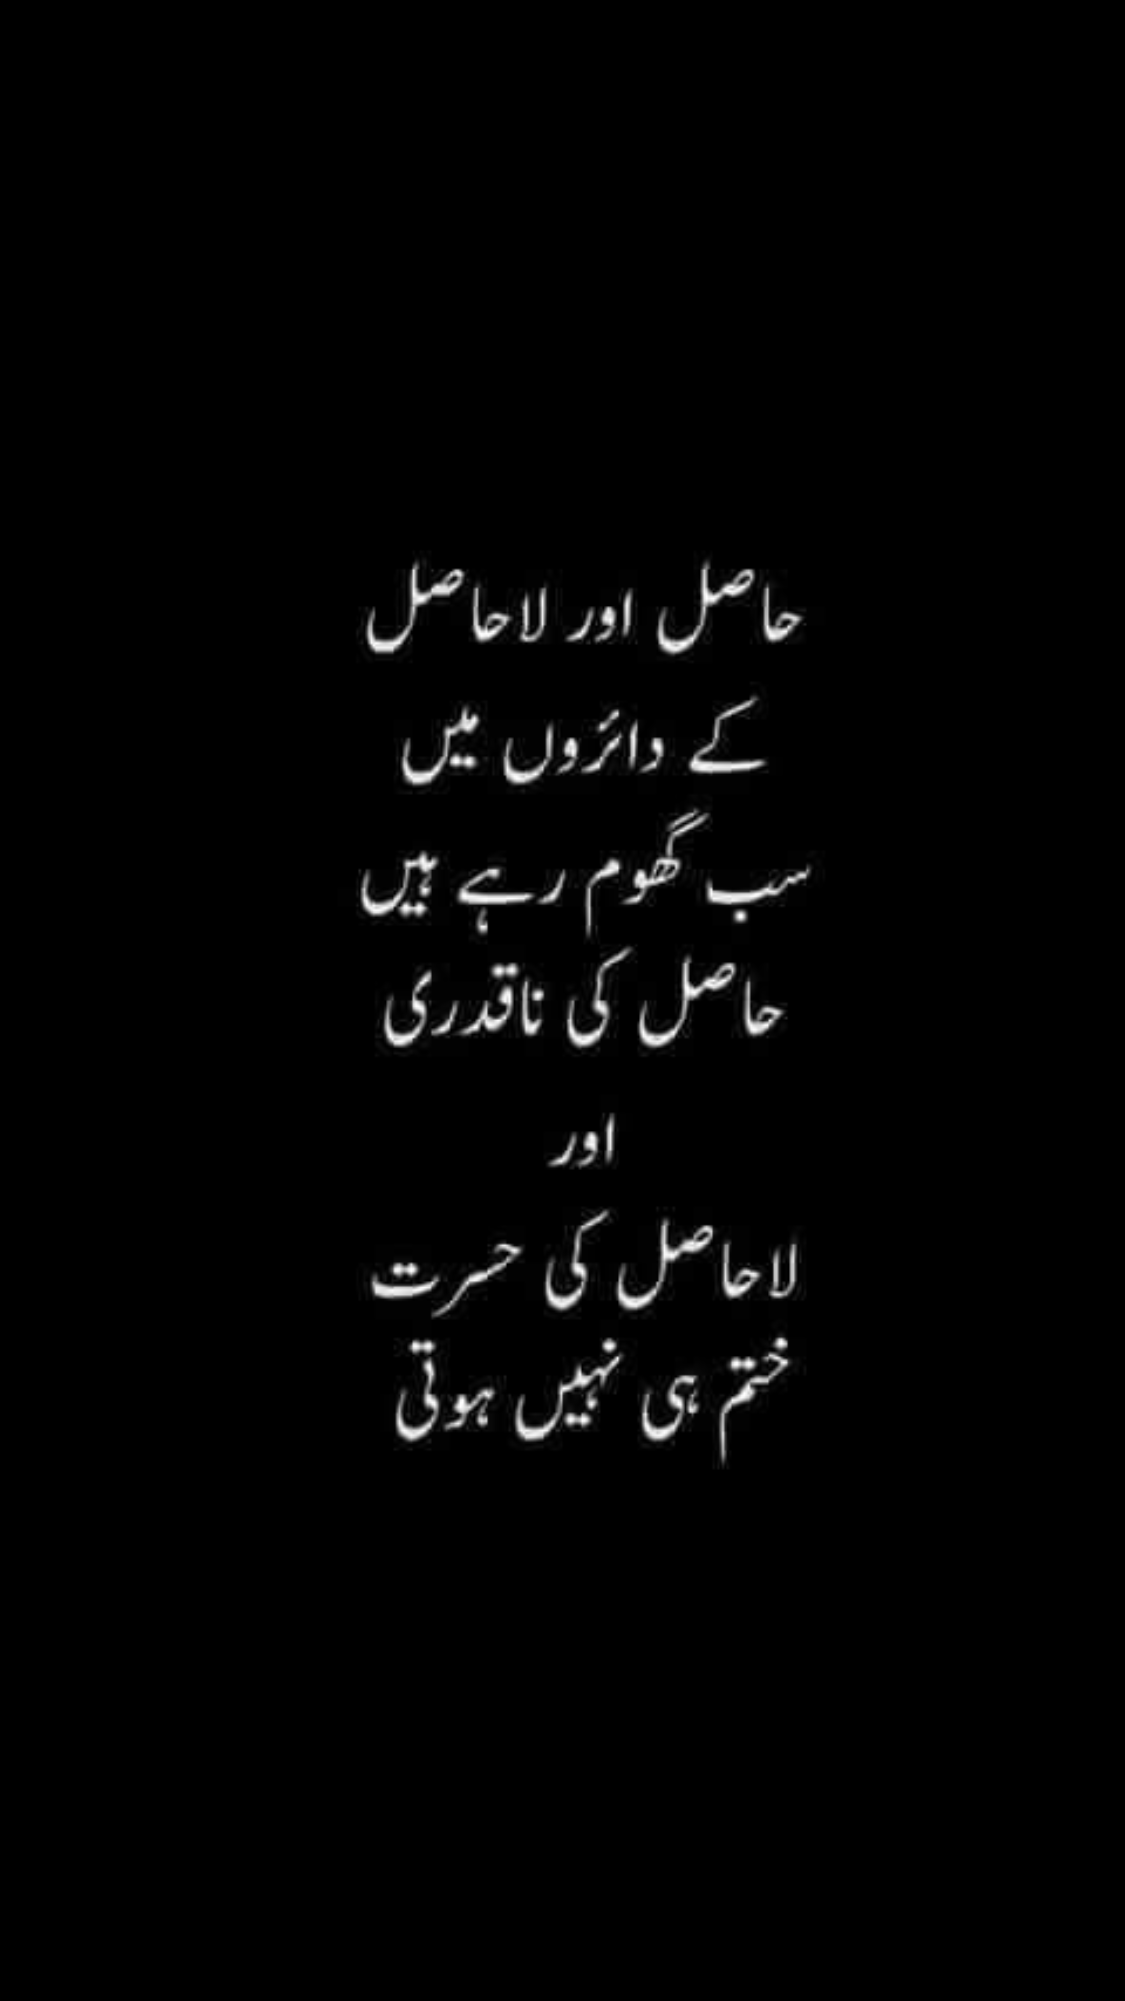 Pin by Dreaming Boy on urdu poetry (With images) Urdu